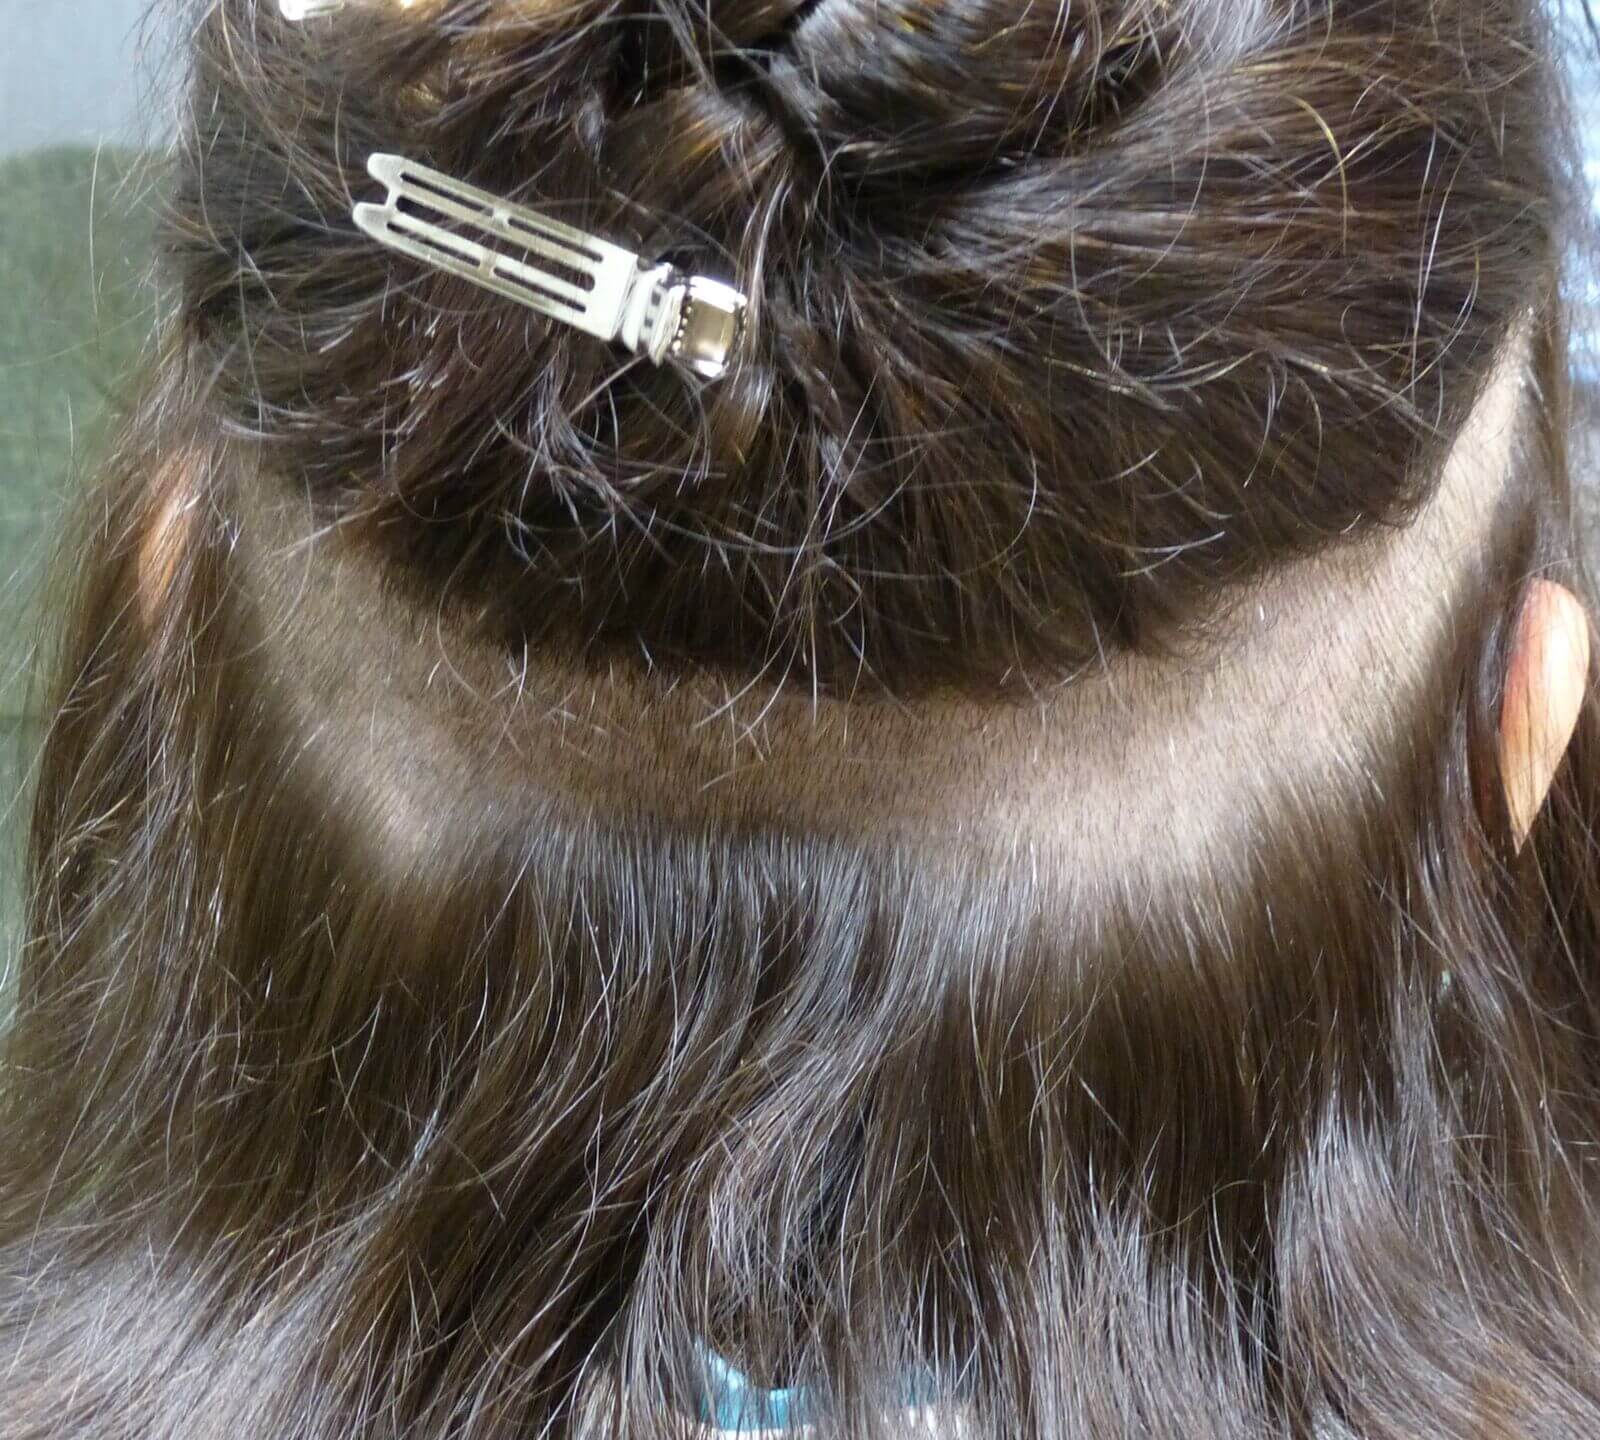 This is an example of a strip excision that is done for patients with long hair. The area is excised and then the edges are sutured back together. This prevents having to shave a large donor site.